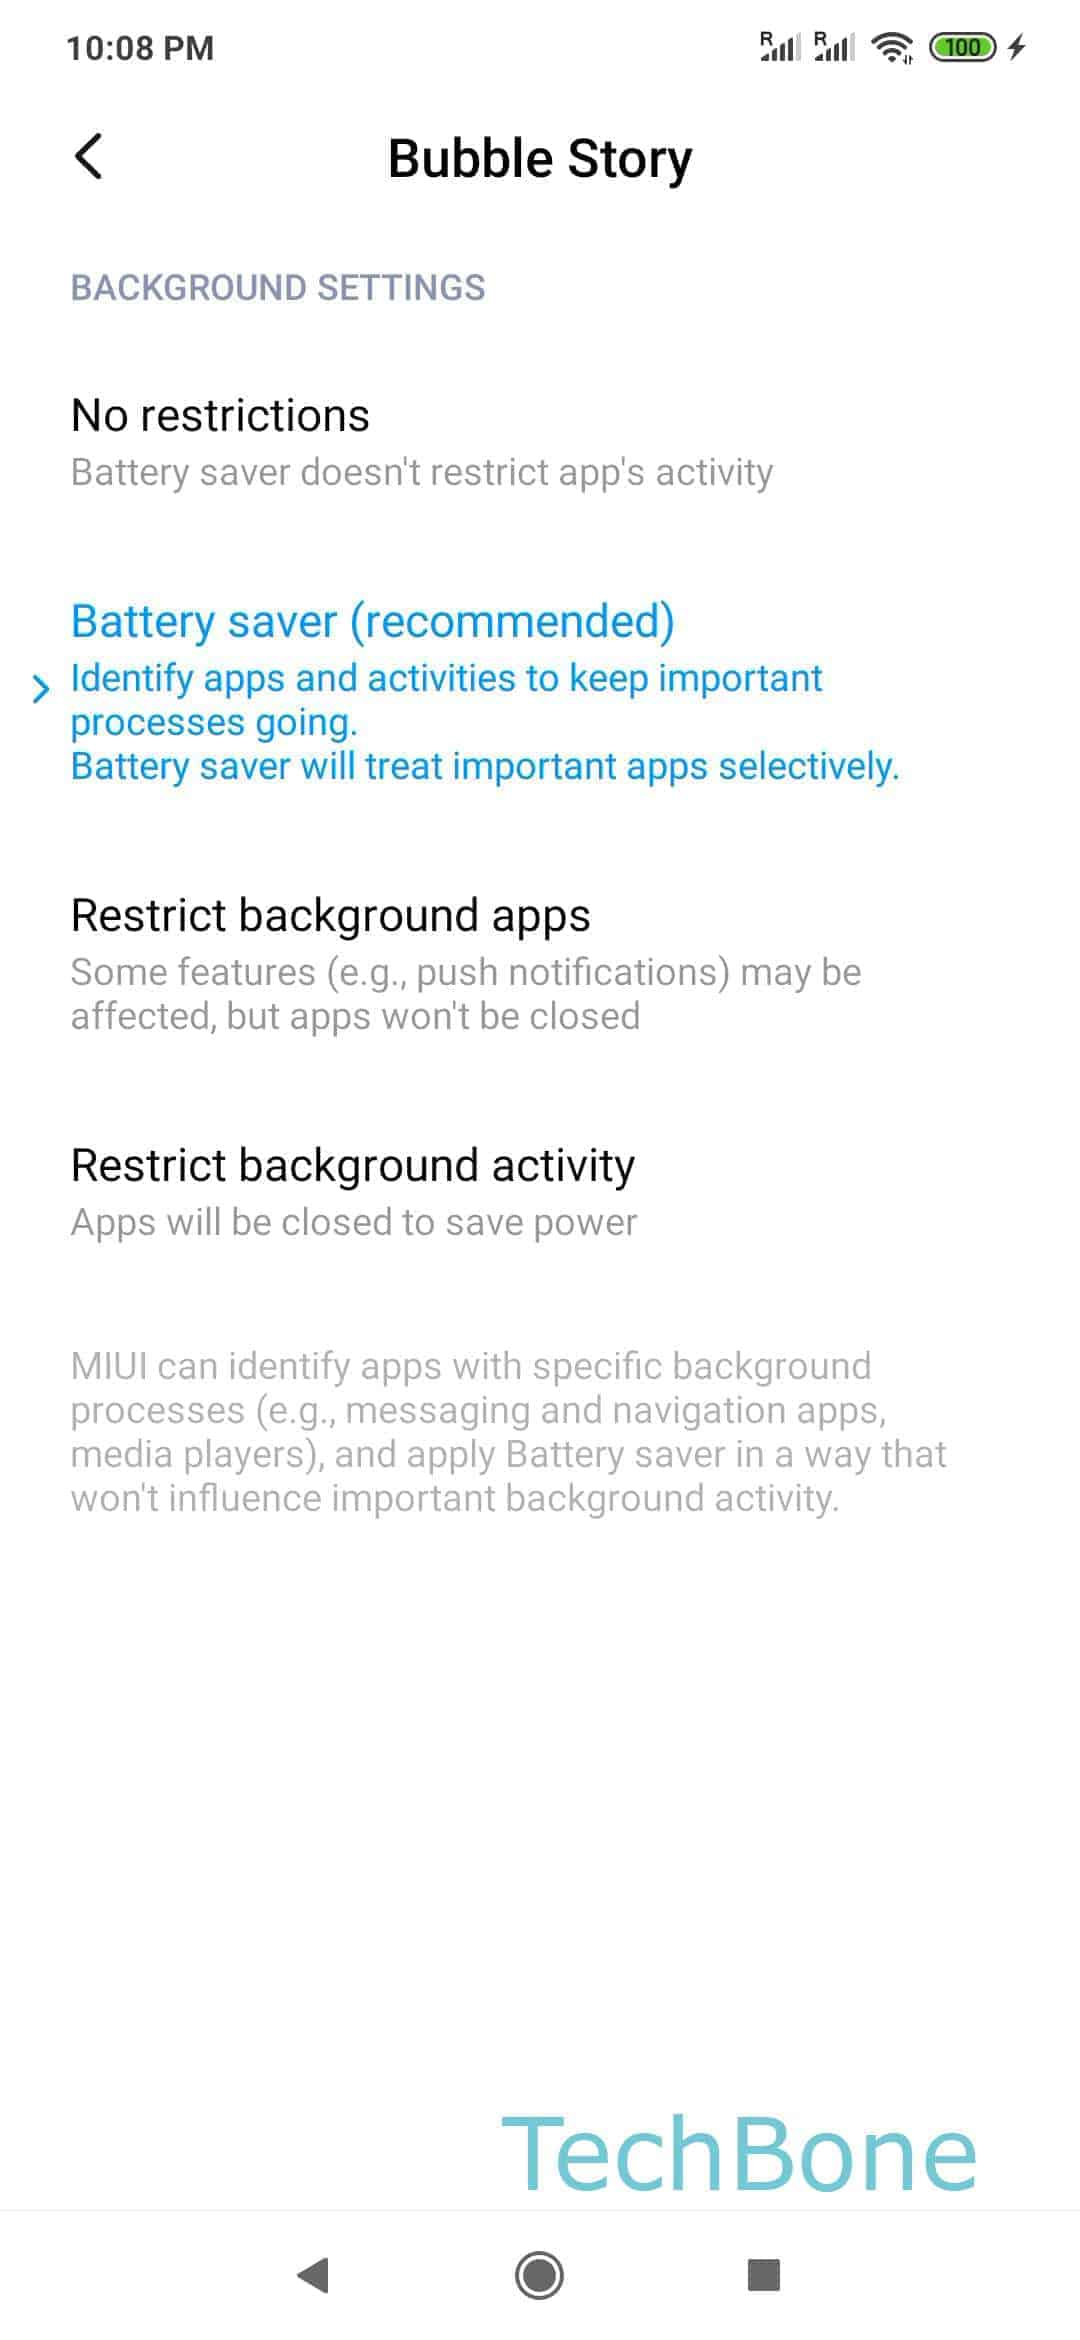 Step 5: Choose between No restrictions, Battery saver, Restrict background apps and Restrict background activity